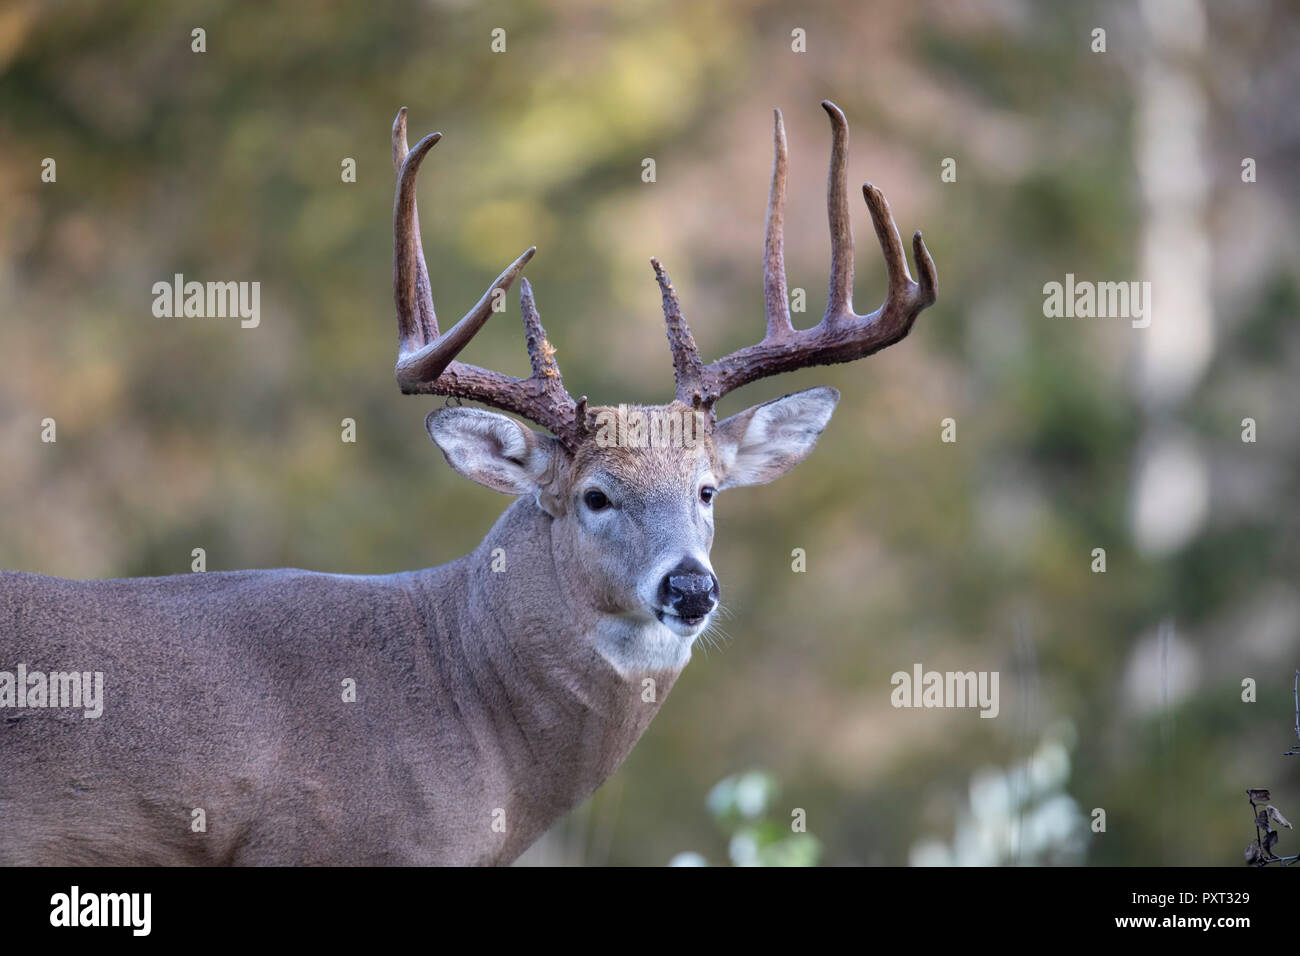 A large male white-tailed deer. - Stock Image